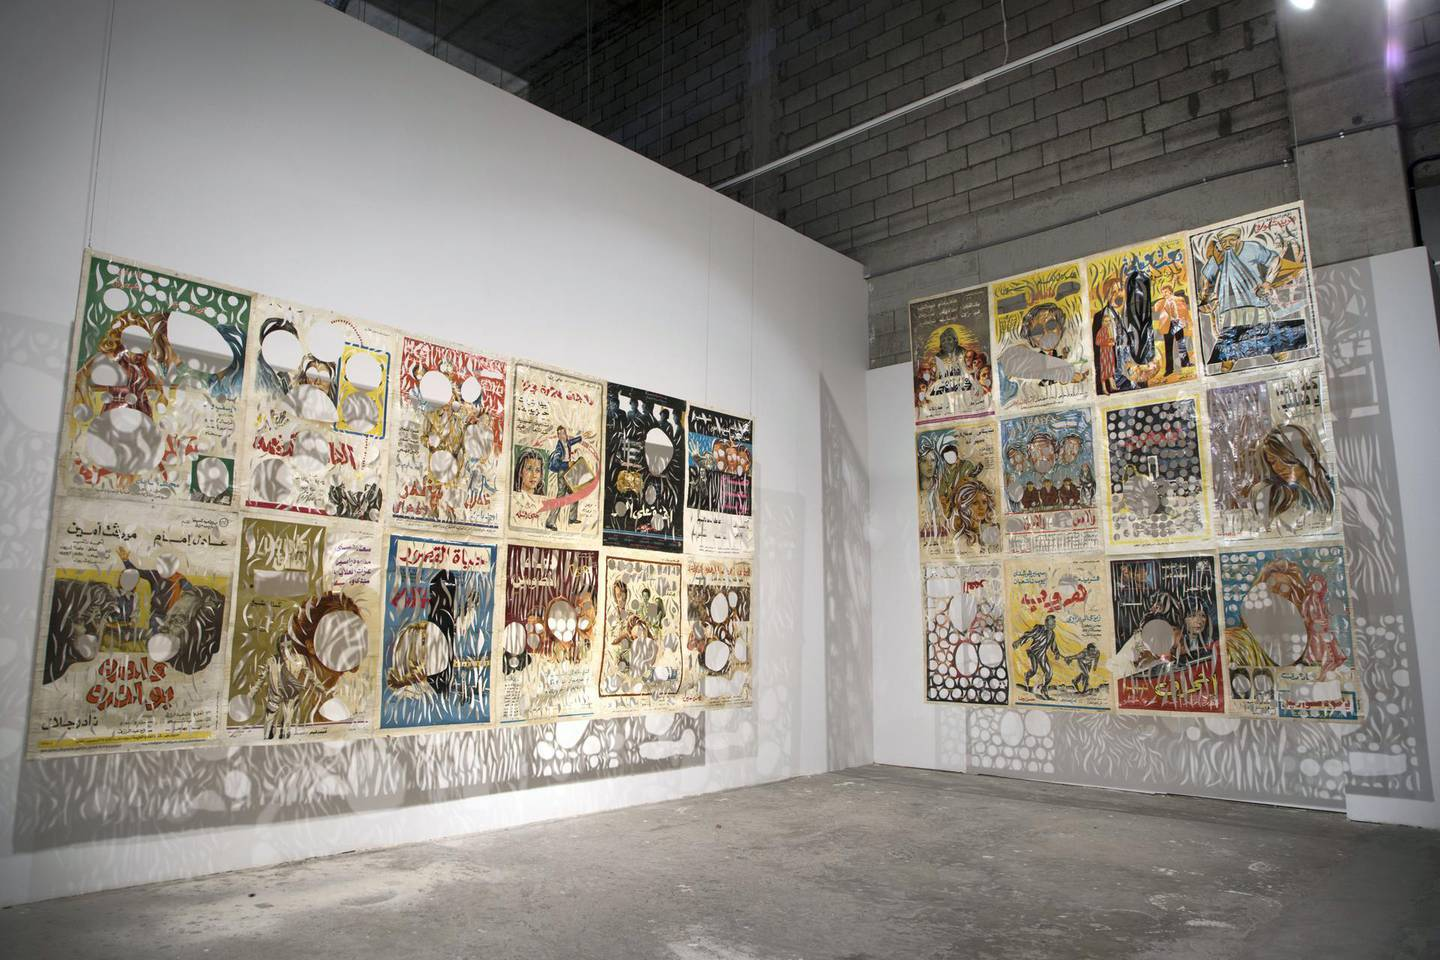 Ayman Yossri Daydban's untitled installation of Egyptian cinema posters from the 1960s, at Refusing to Be Still, part of the 21, 39 Jeddah art events. Courtesy Willy Lowry